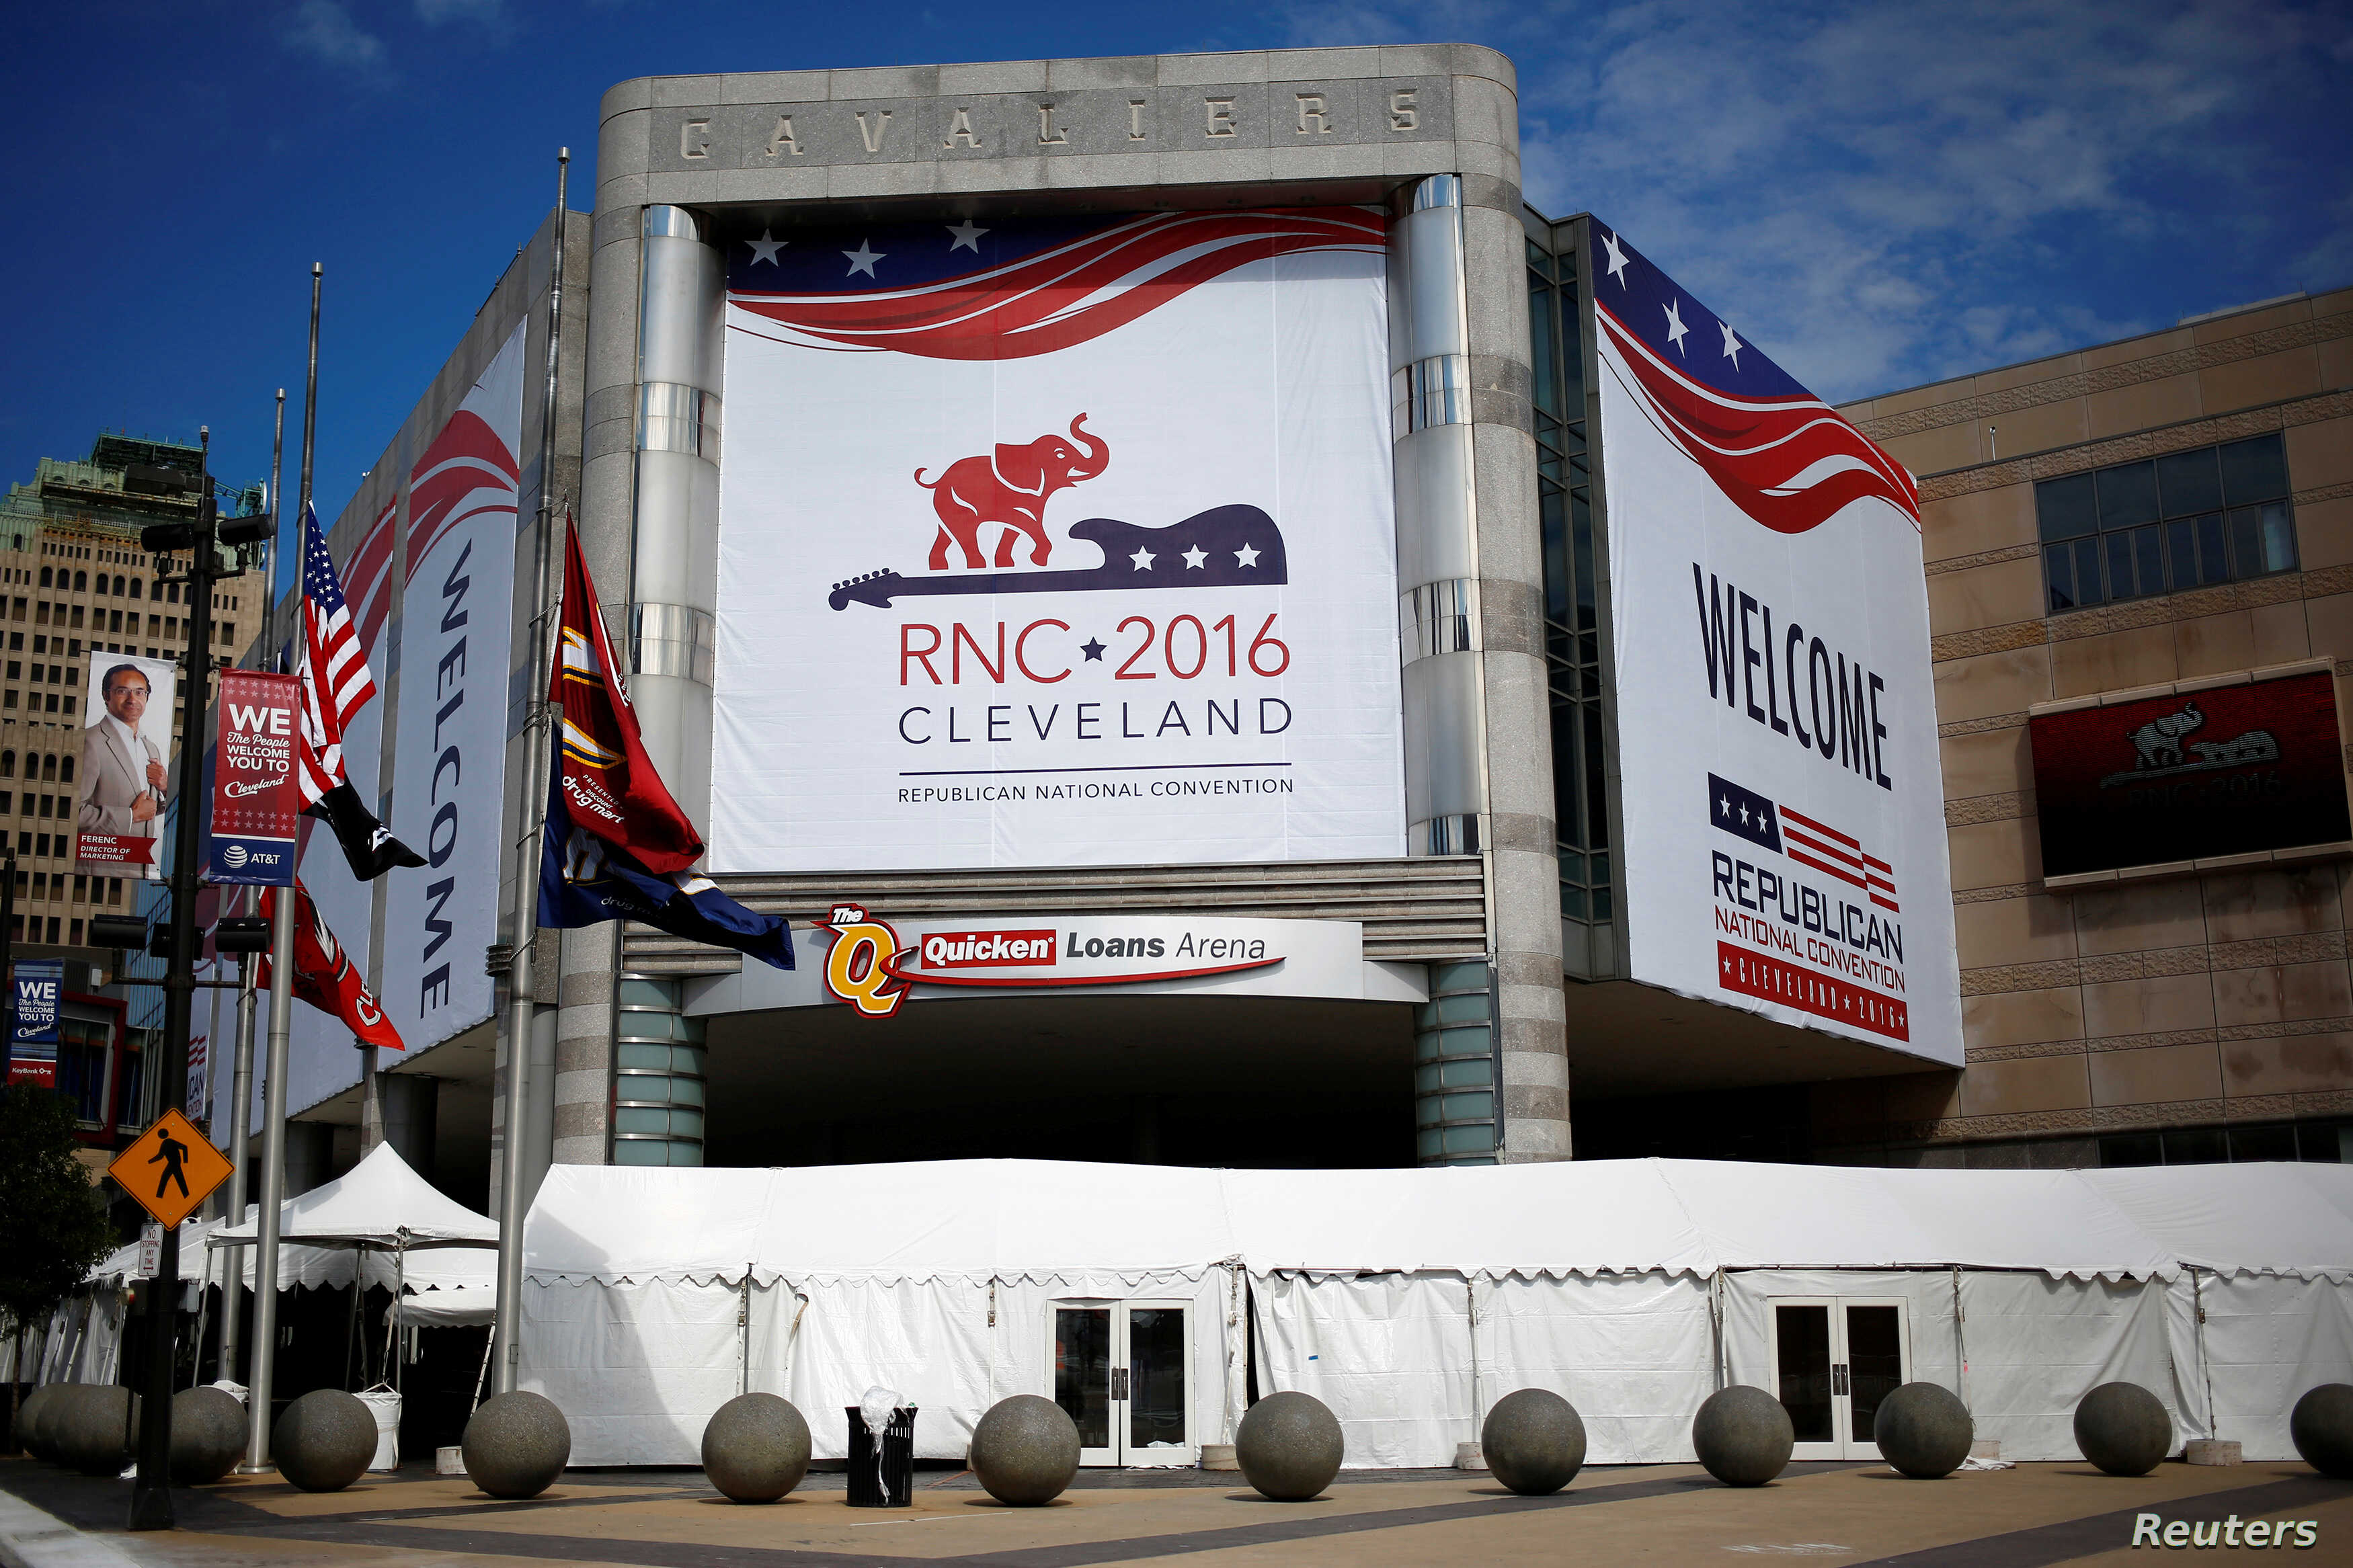 Republicans Open Convention With Focus on Security